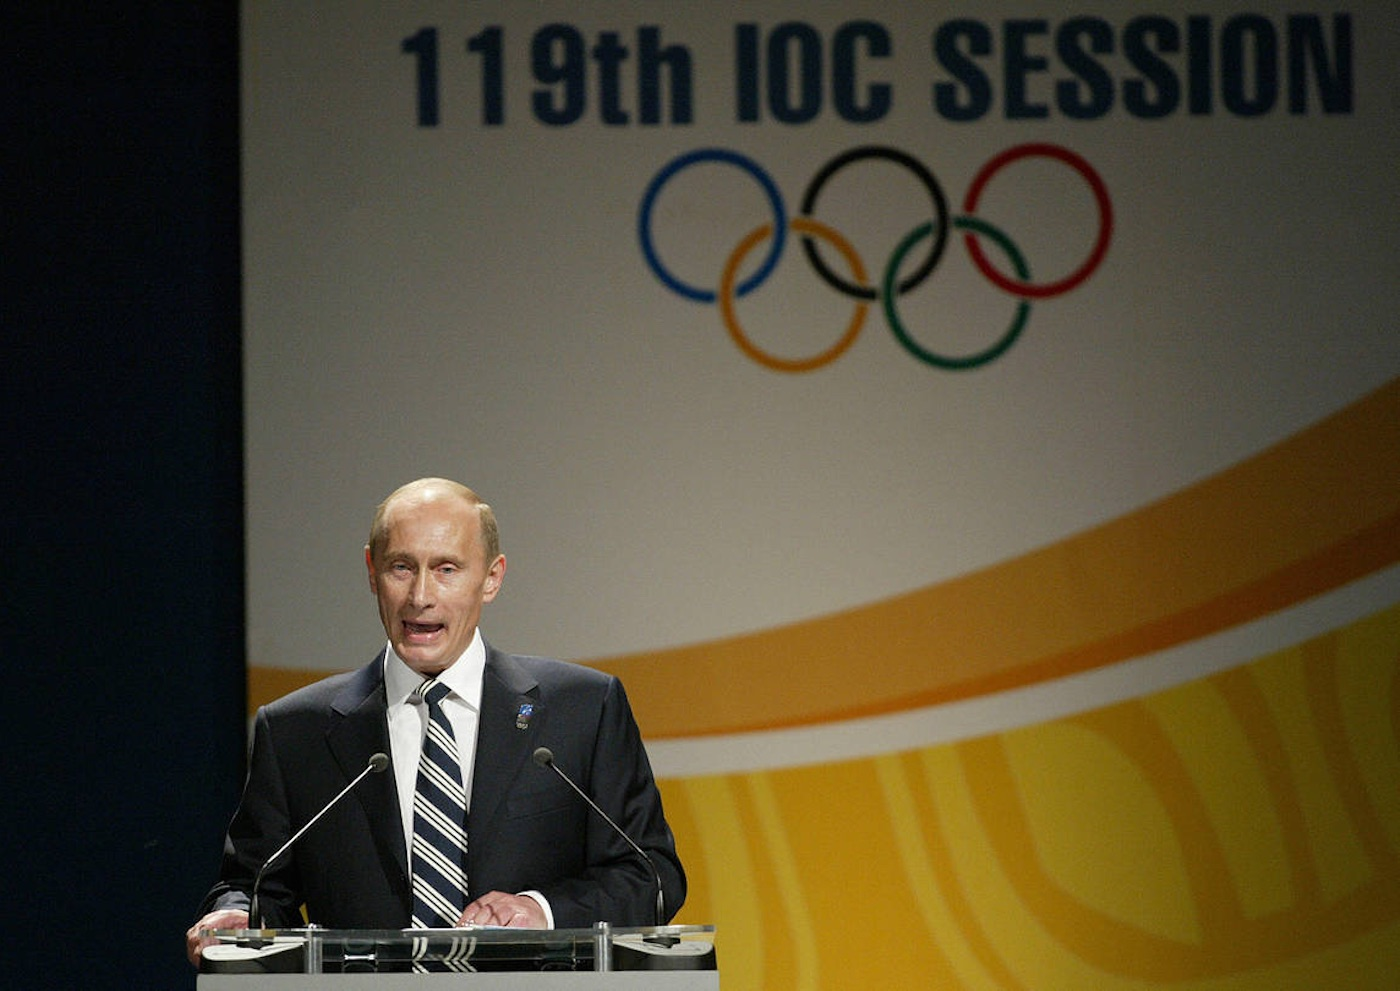 Vladimir Putin's speech in English at the 2007 IOC Session took Sochi over the line to become the host of the 2014 Olympic Winter Games. |Photo: The Wall Street Journal